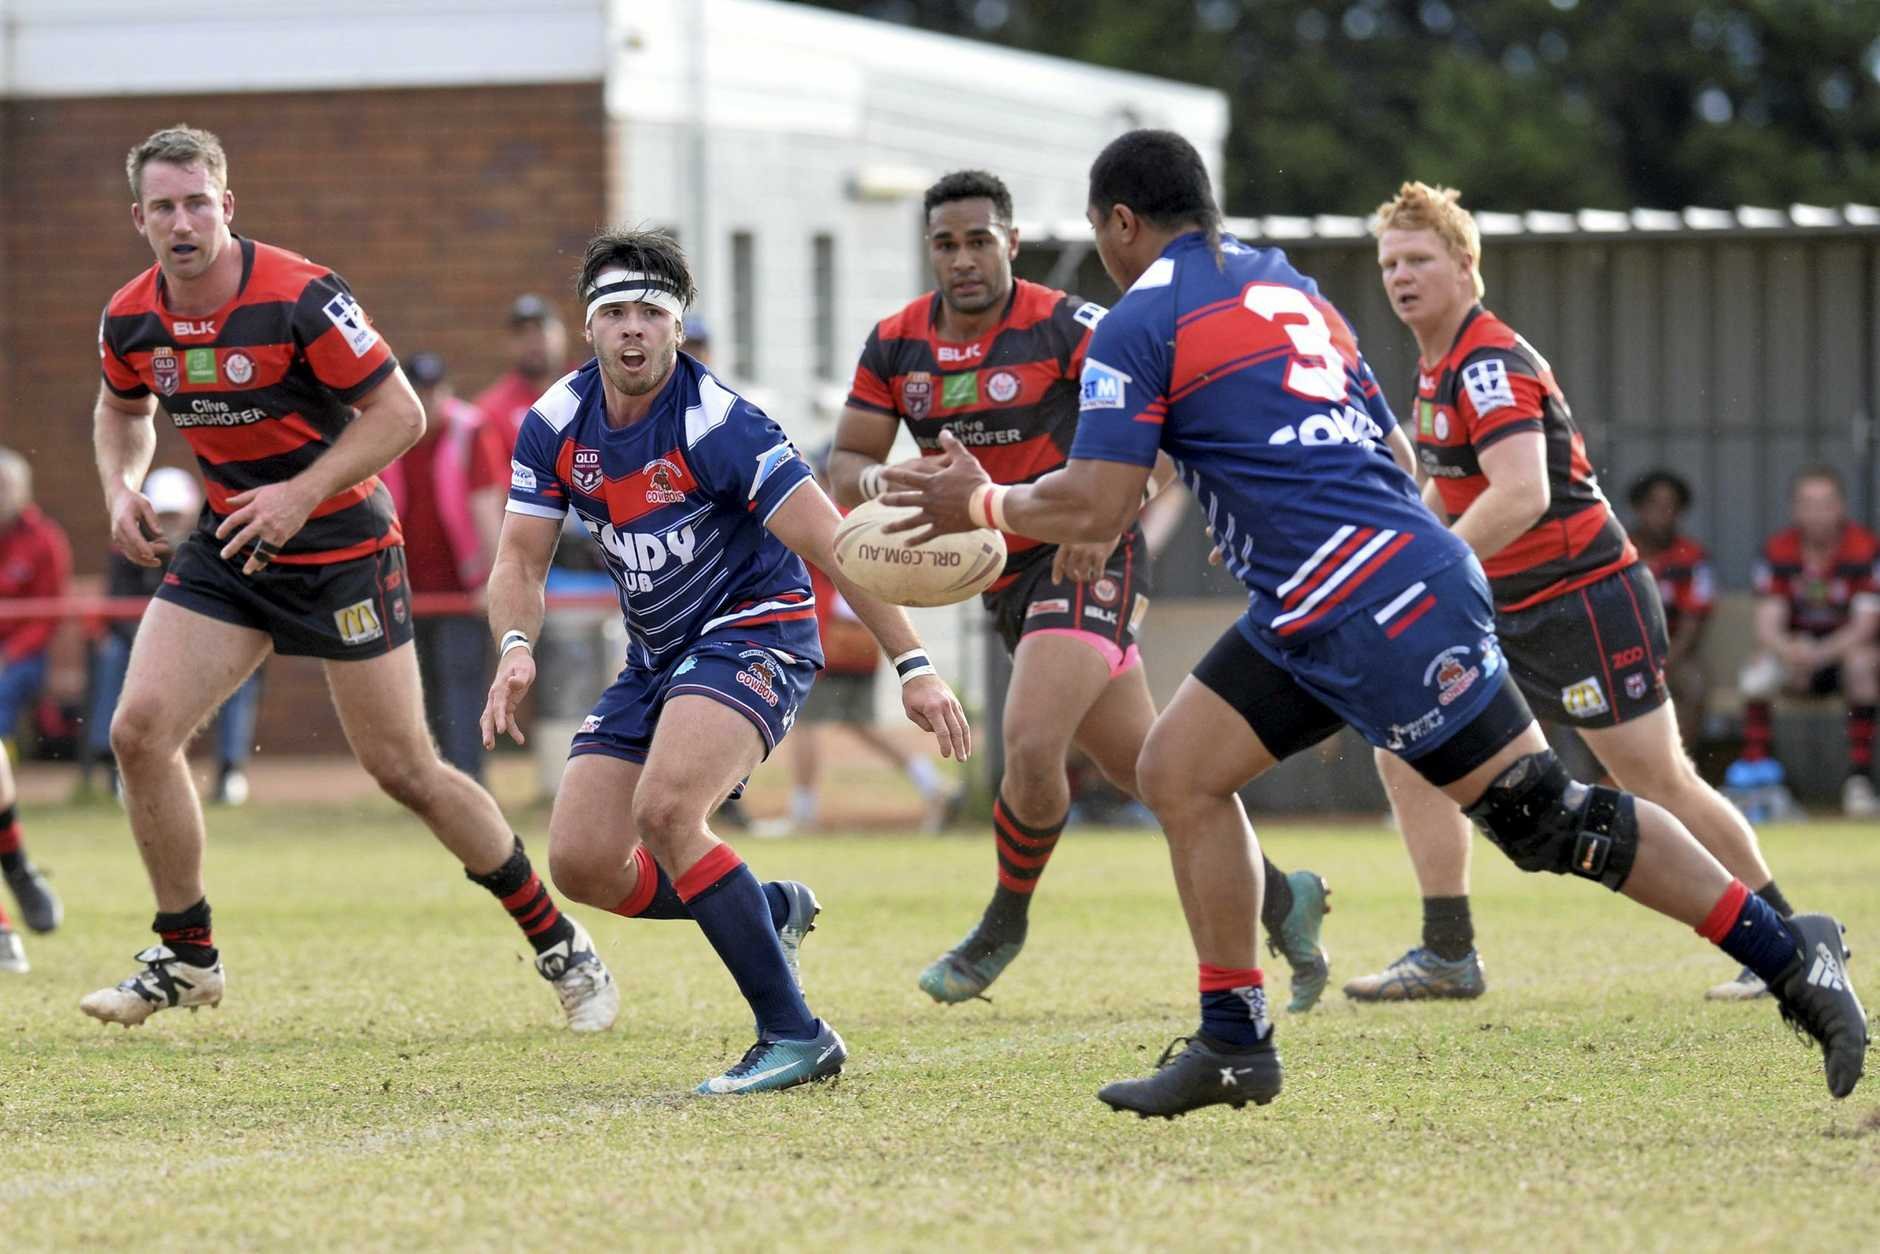 Paul Cantwell of Warwick against Valleys in TRL Premiership round 17 rugby league at Herb Steinohrt Oval, Sunday, July 29, 2018.